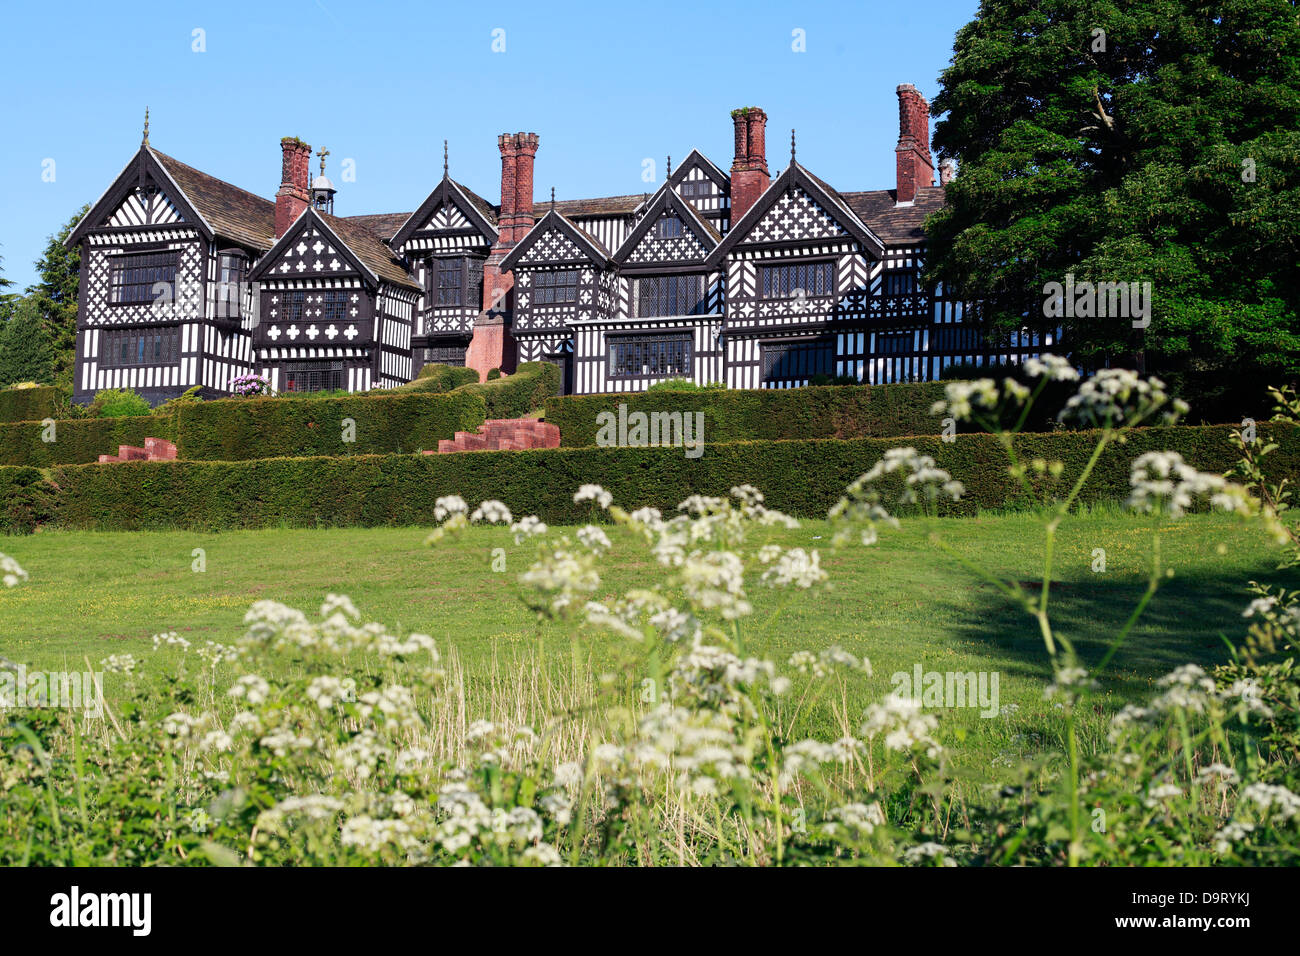 Bramhall Hall A Tudor Timber Framed Country House In Bramhall Stockport Cheshire England - Stock Image